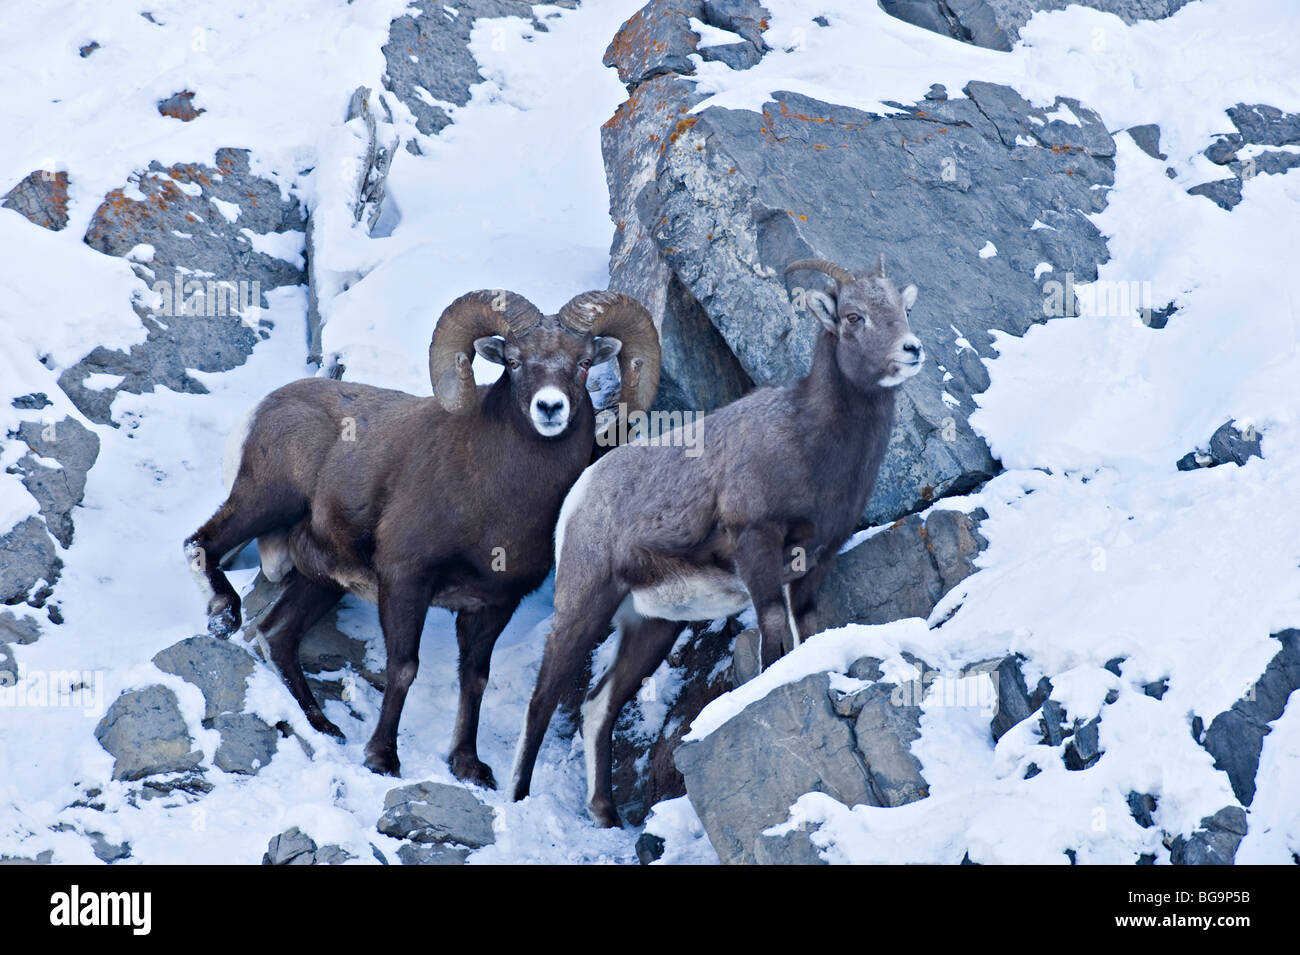 A male and female Bighorn Sheep - Stock Image